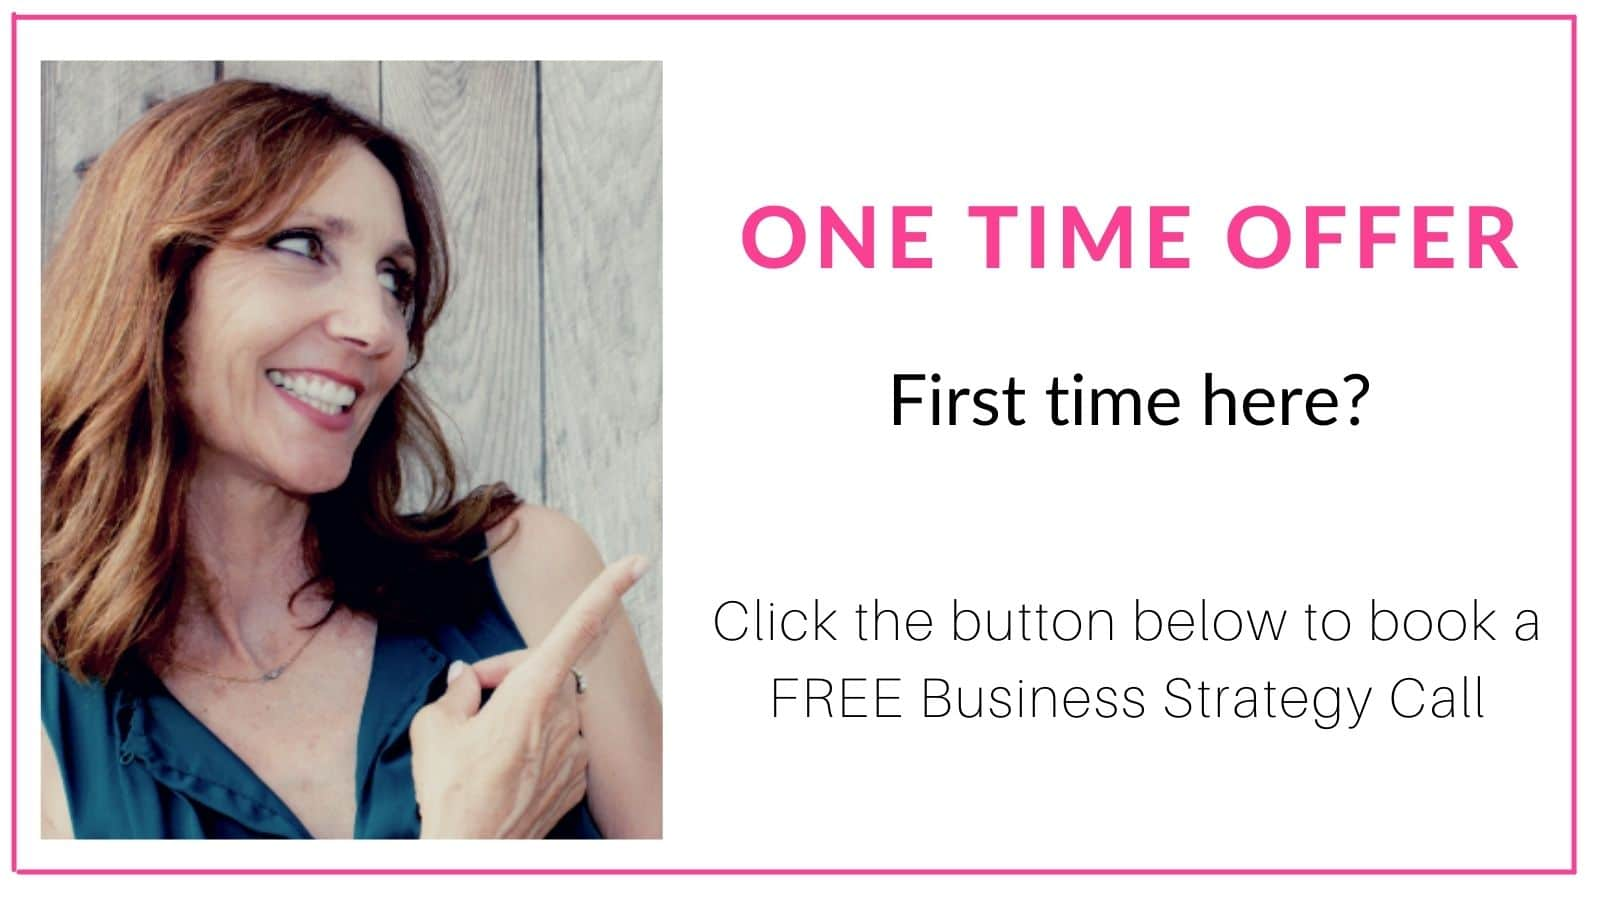 FREE Business Strategy Call